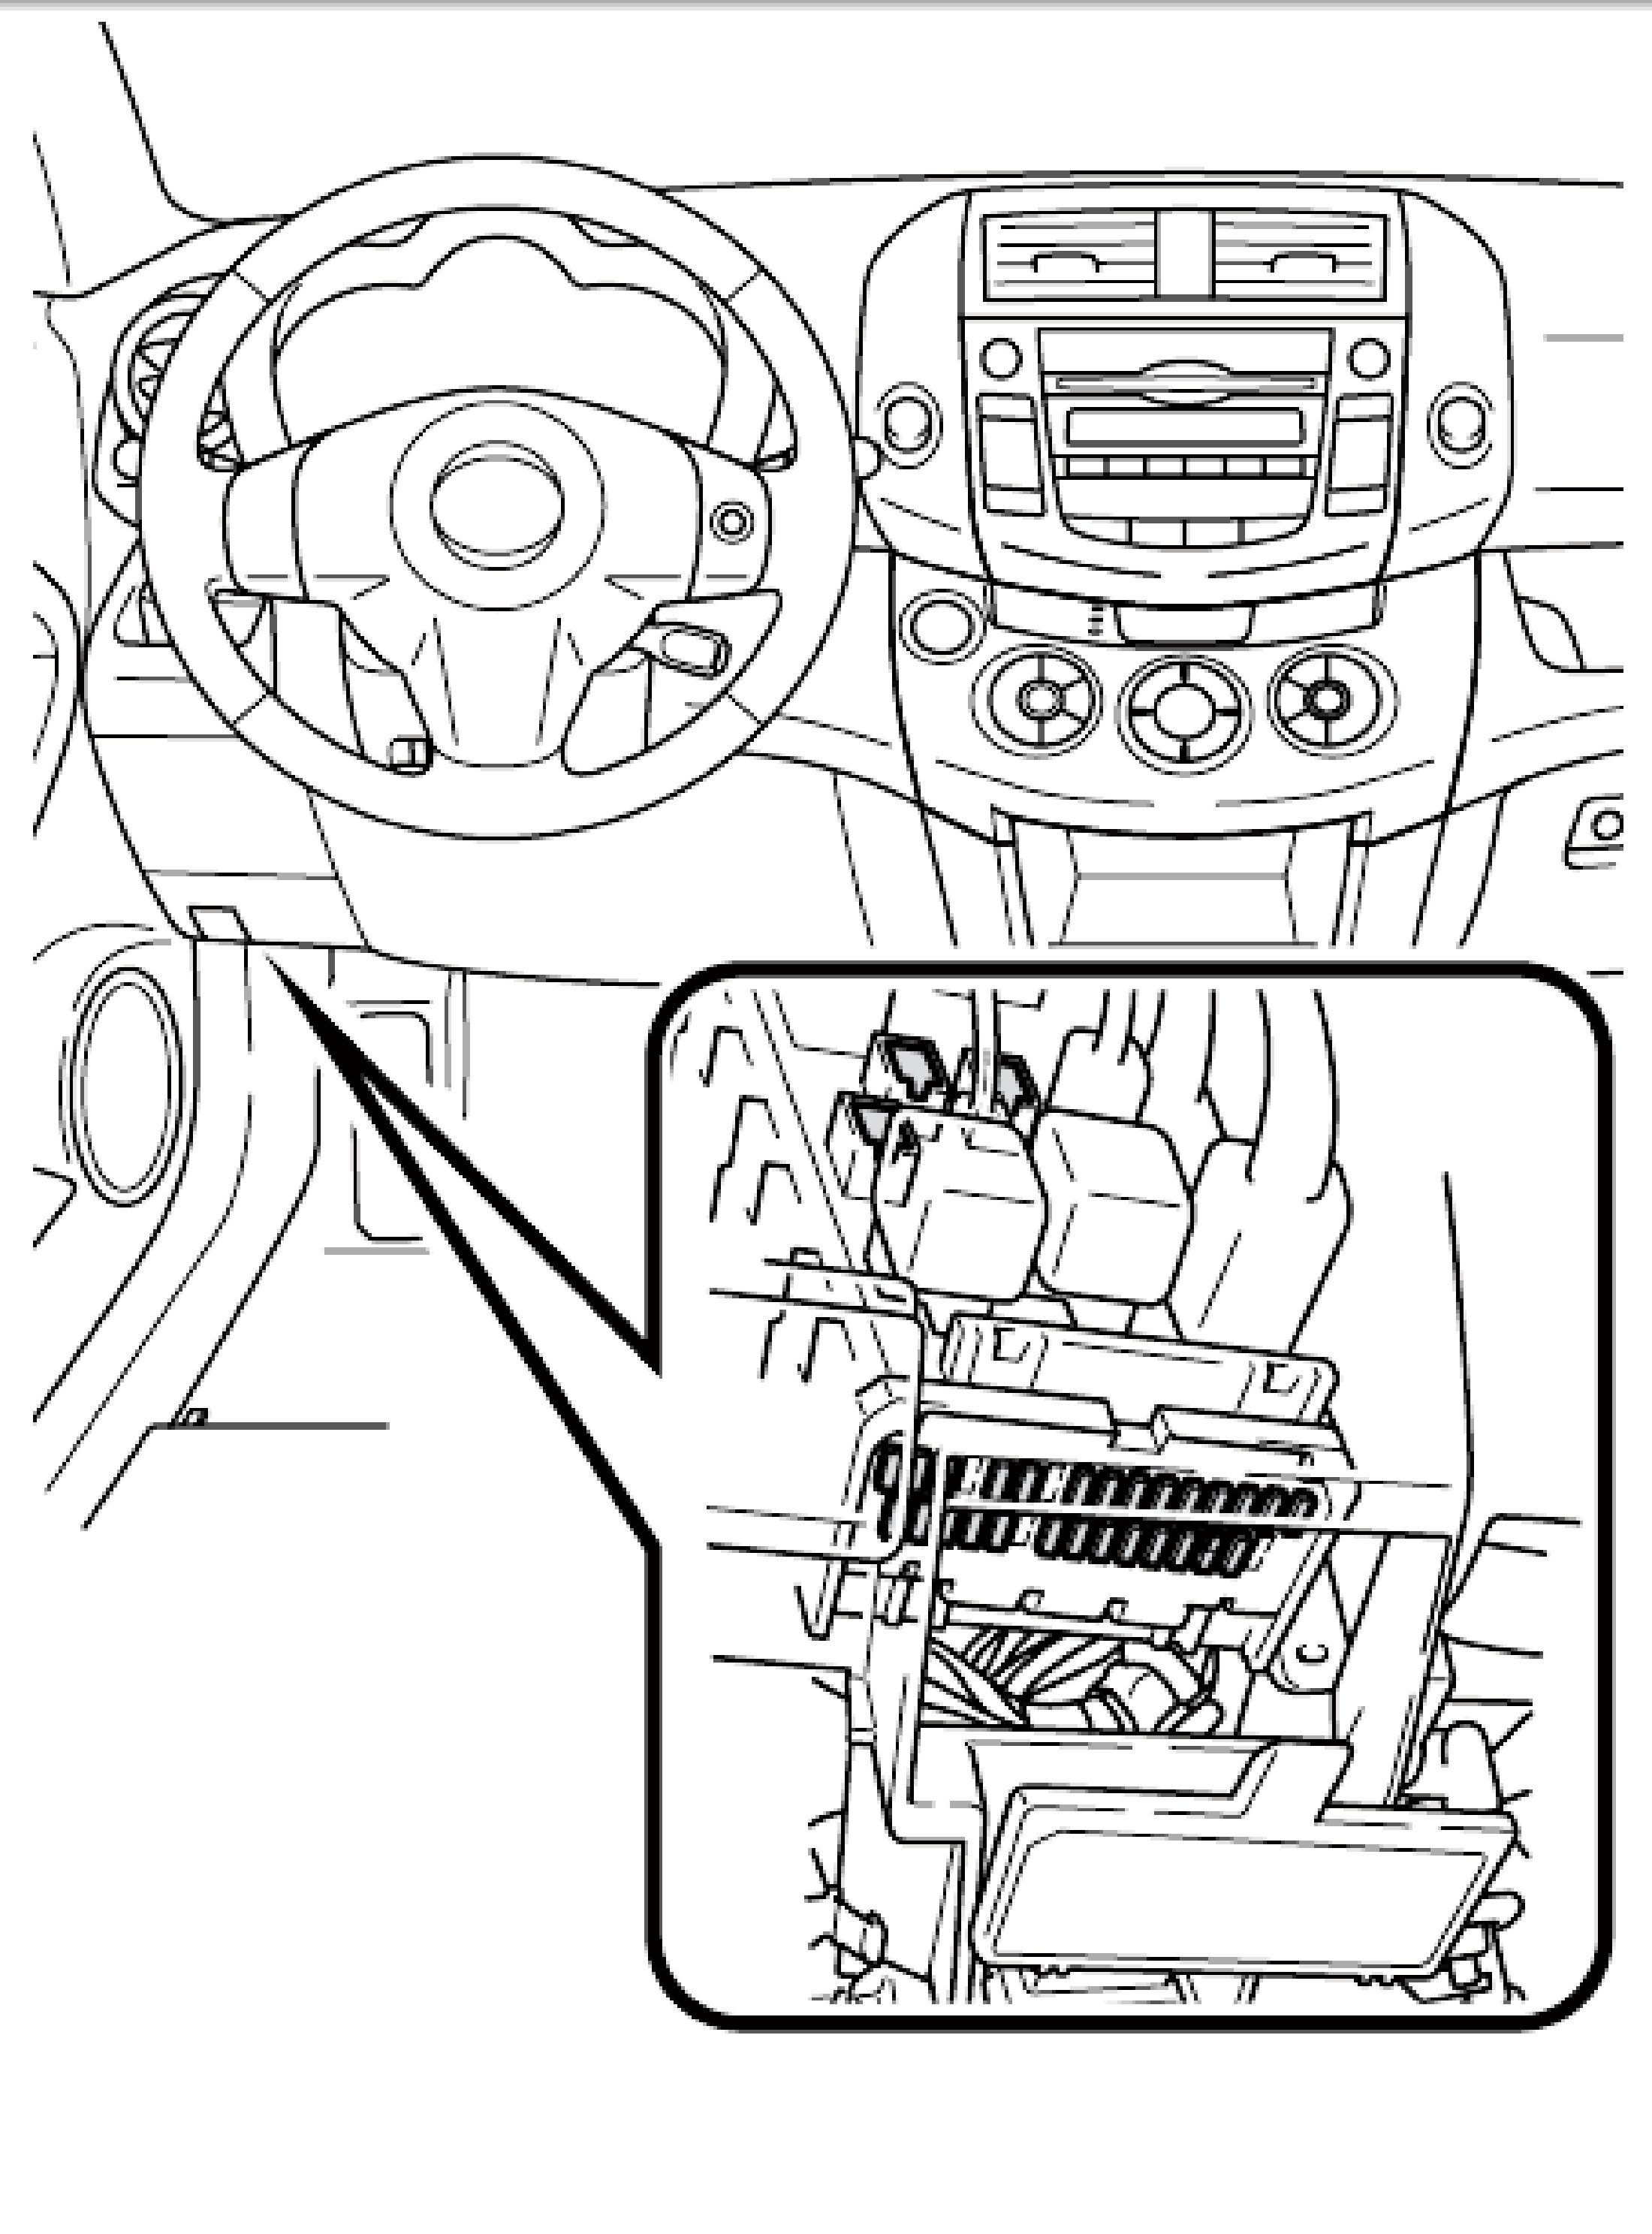 toyota rav4 fuse box location GCKEDBA rav4 fuse box location 1998 wiring diagrams instruction 1996 toyota corolla fuse box location at soozxer.org